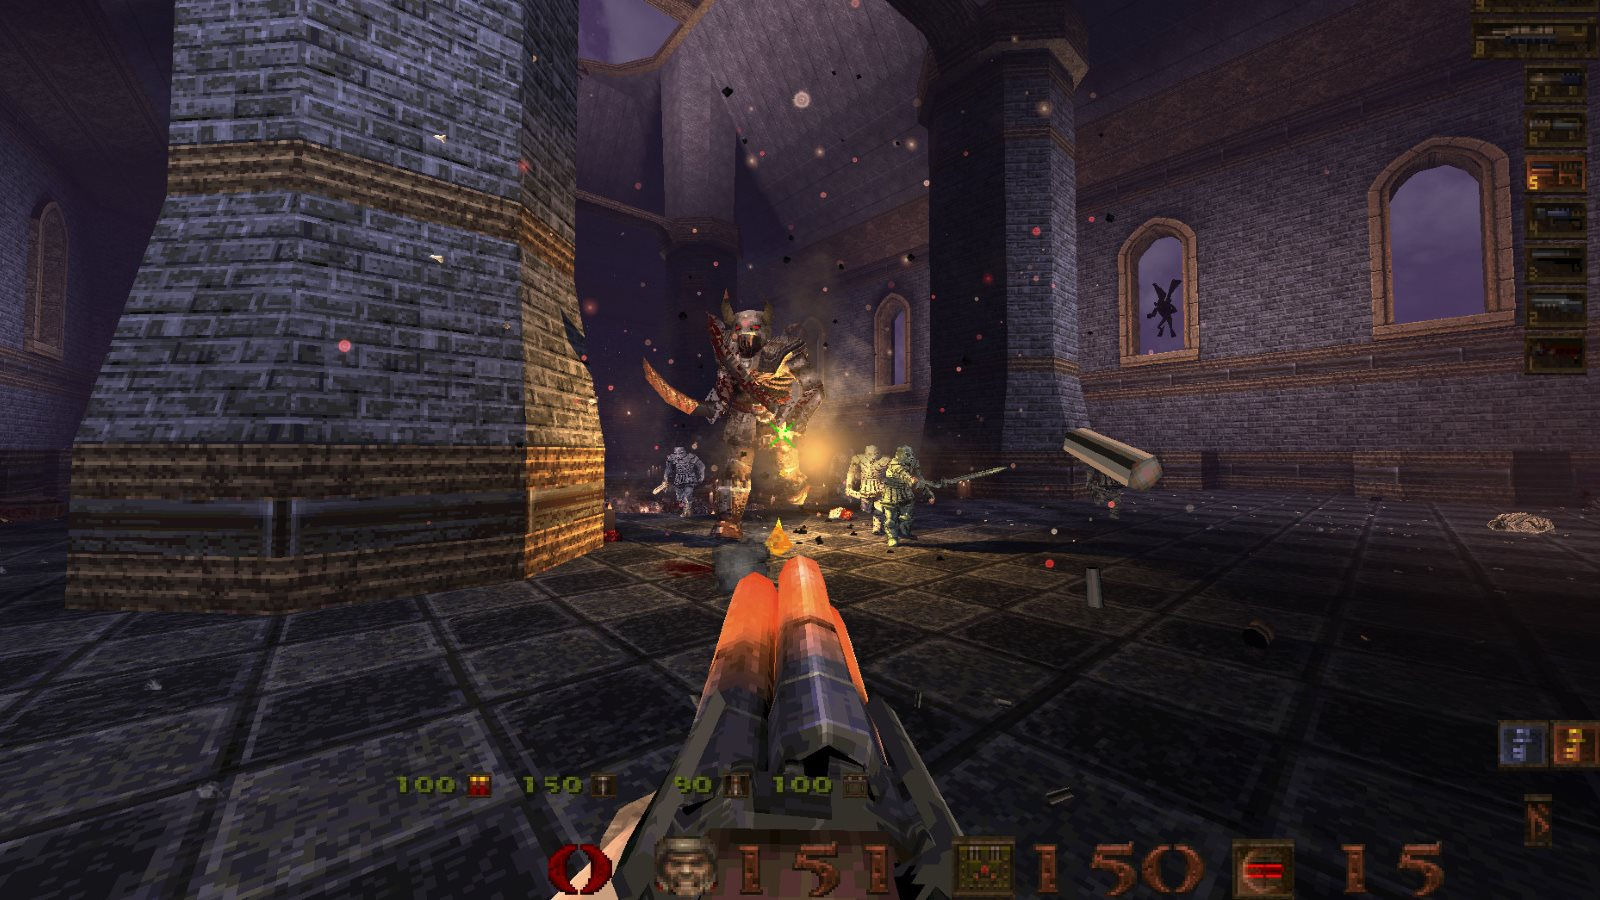 Quake 1.5 is a massive mod overhaul for the FPS classic | Rock Paper